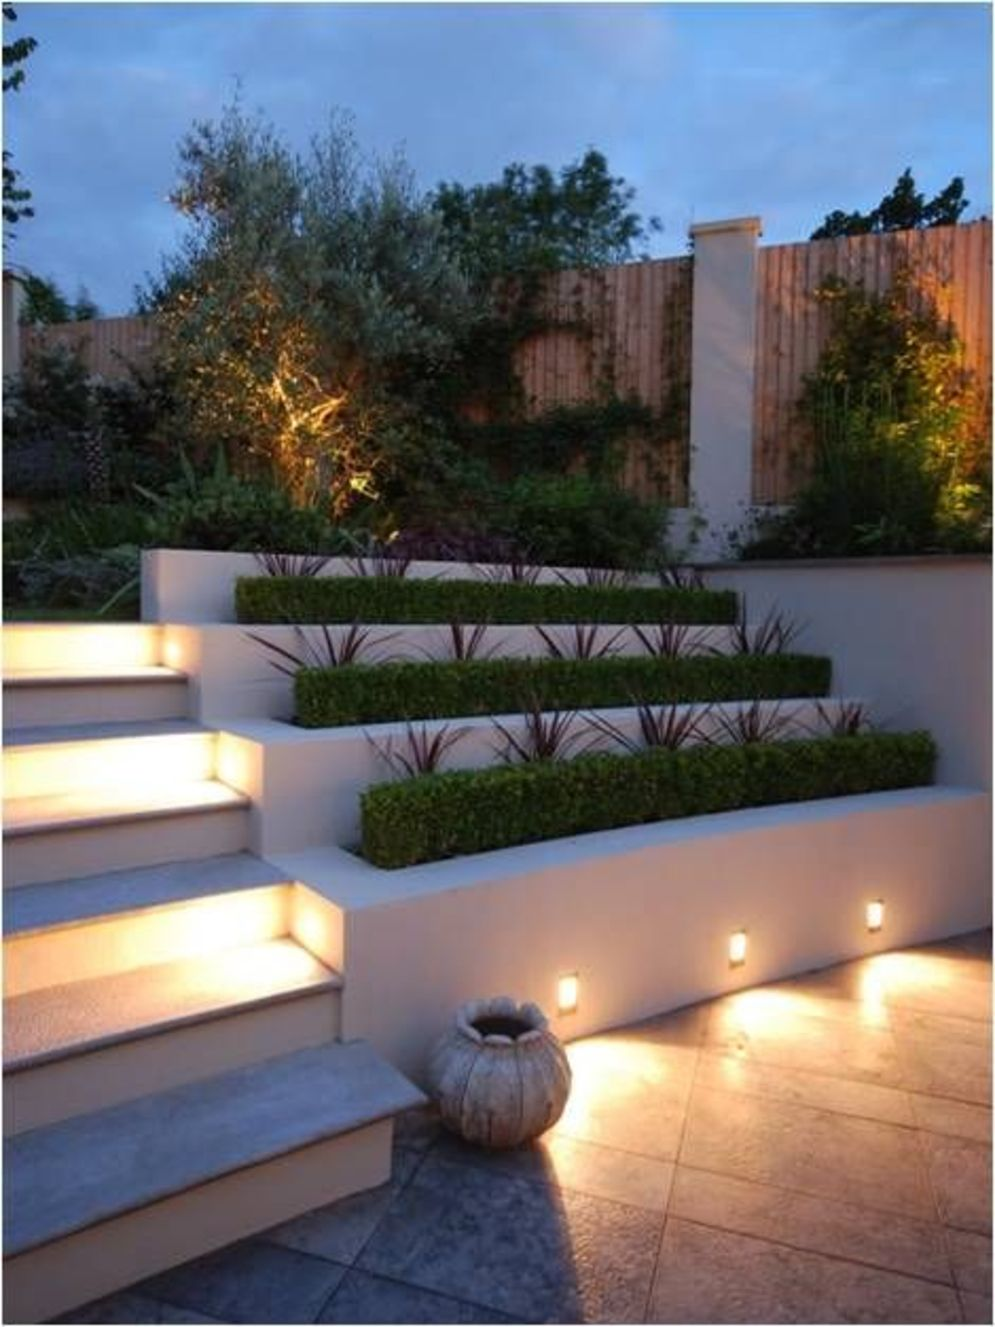 Beautiful garden lighting ideas with ground level ambient light giving luxurious resorts look Image 33